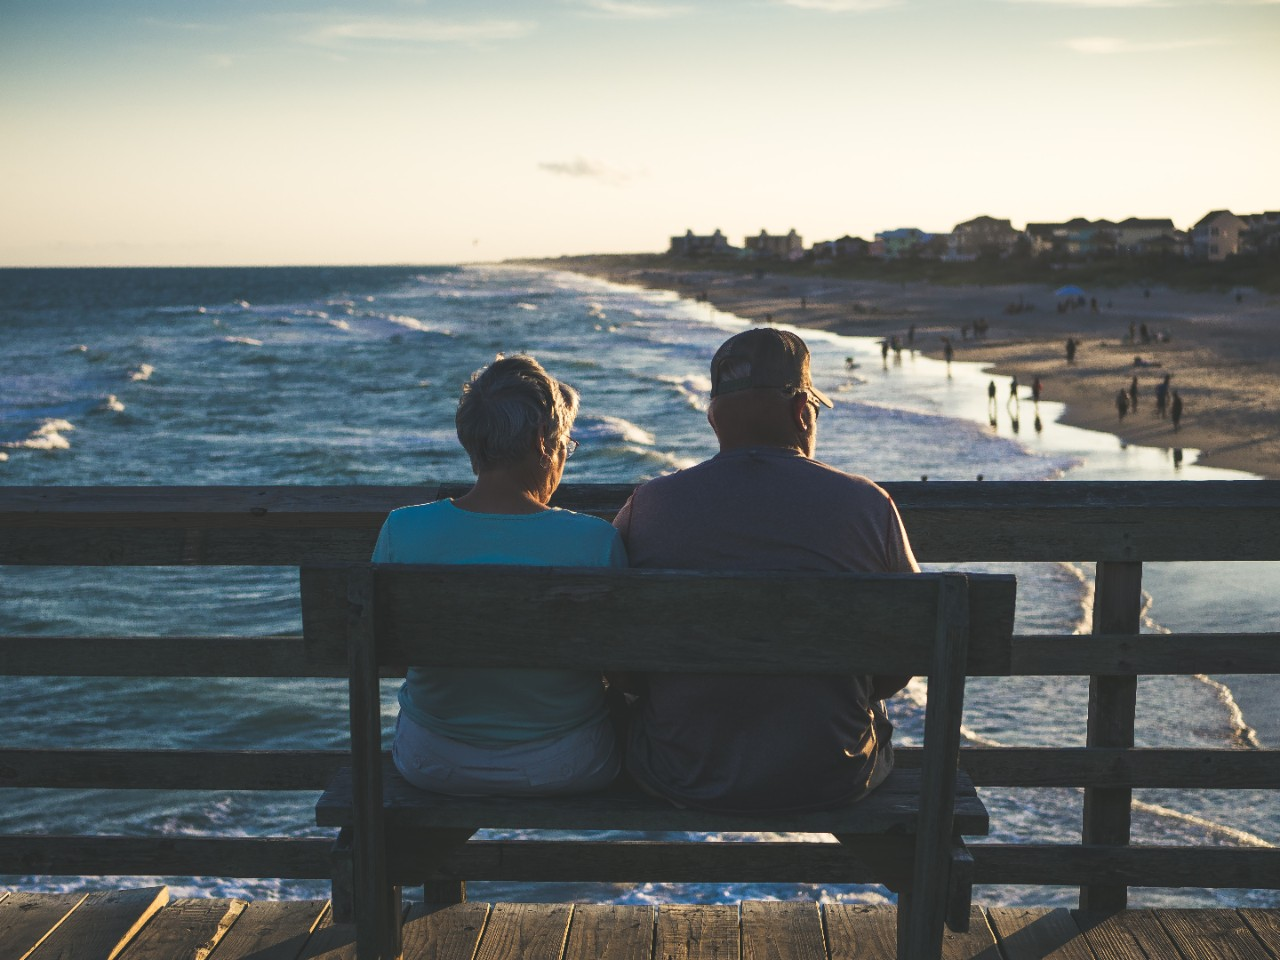 Elderly womand and man, couple, sitting on bench looking out at beach on pier.